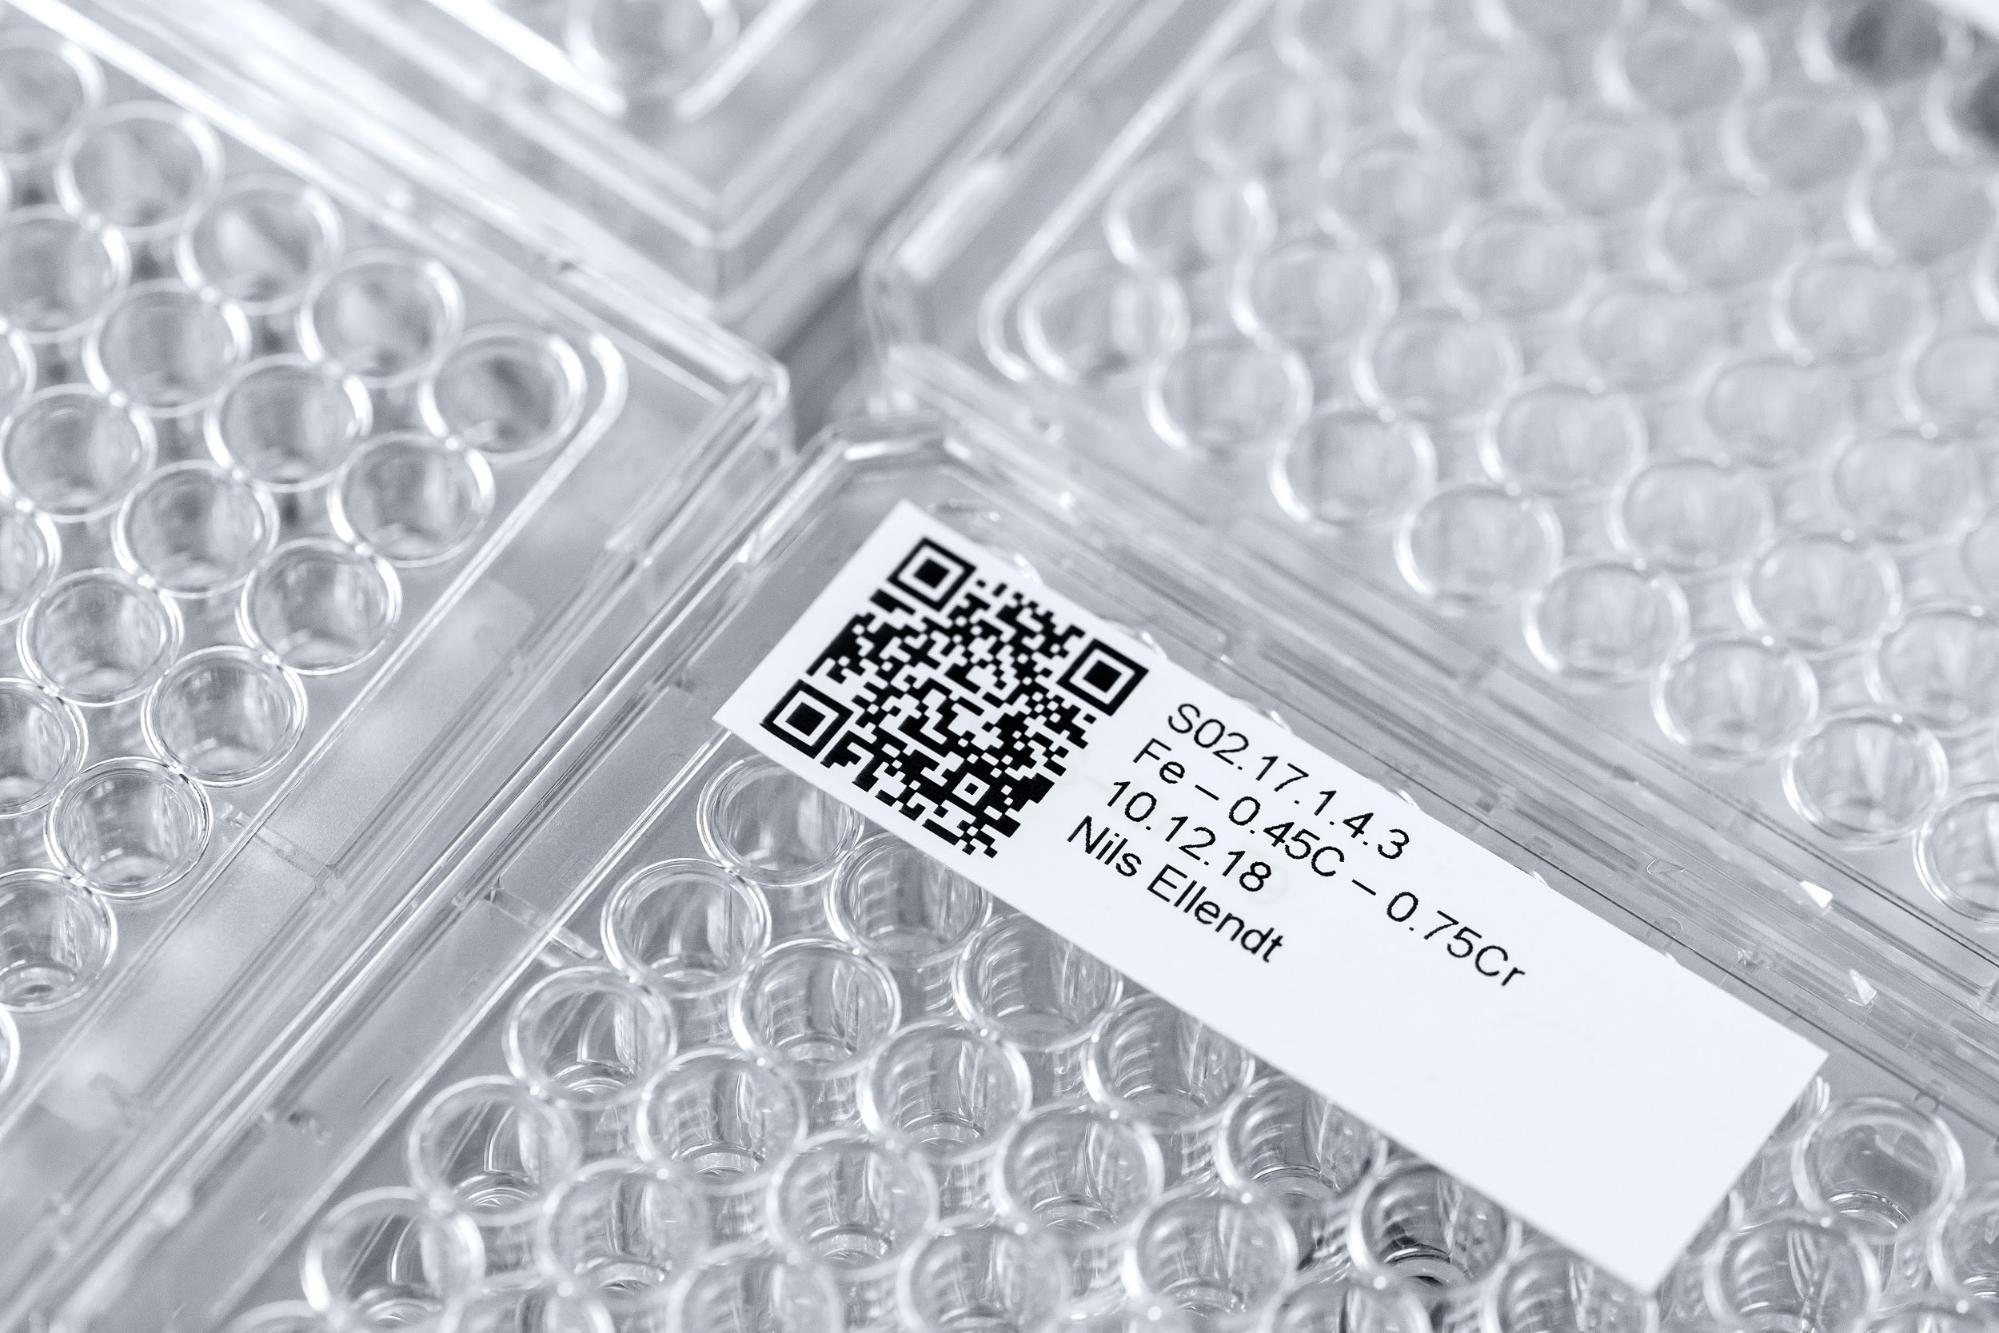 Sample container with a QR-Code.